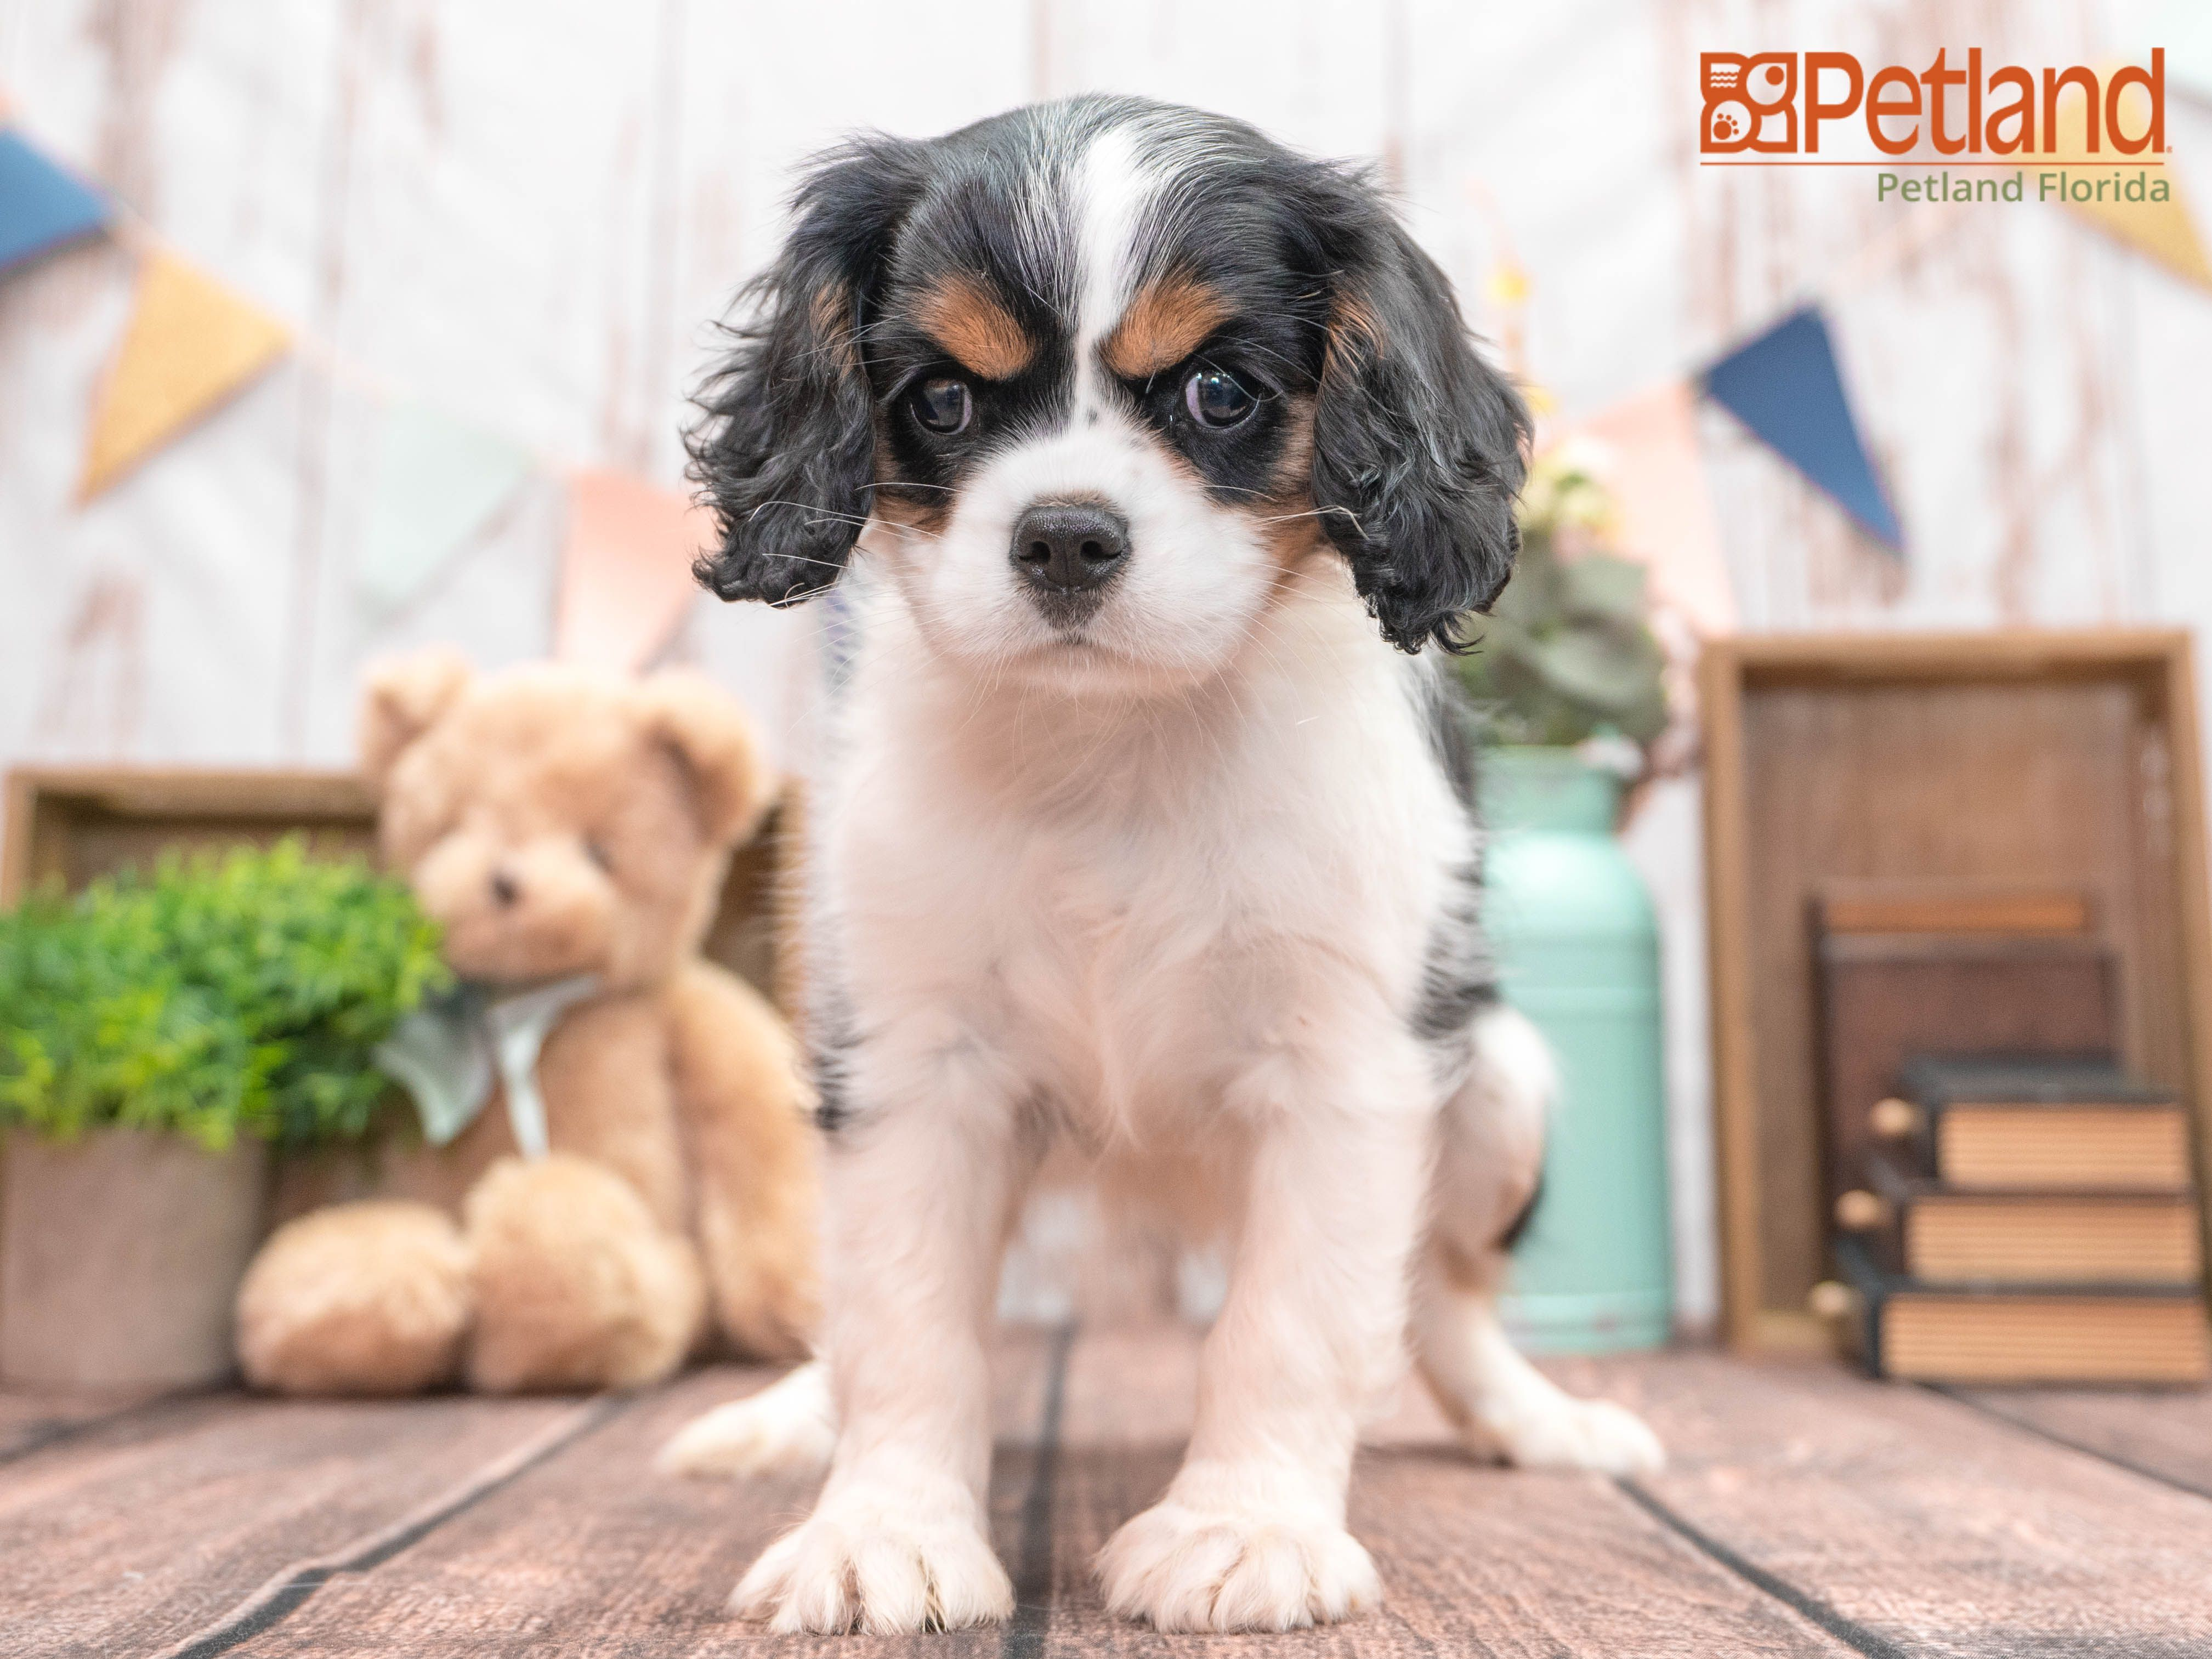 Petland Florida Has Cavalier King Charles Spaniel Puppies For Sale Check Out All Ou In 2020 Puppy Friends Spaniel Puppies For Sale King Charles Cavalier Spaniel Puppy